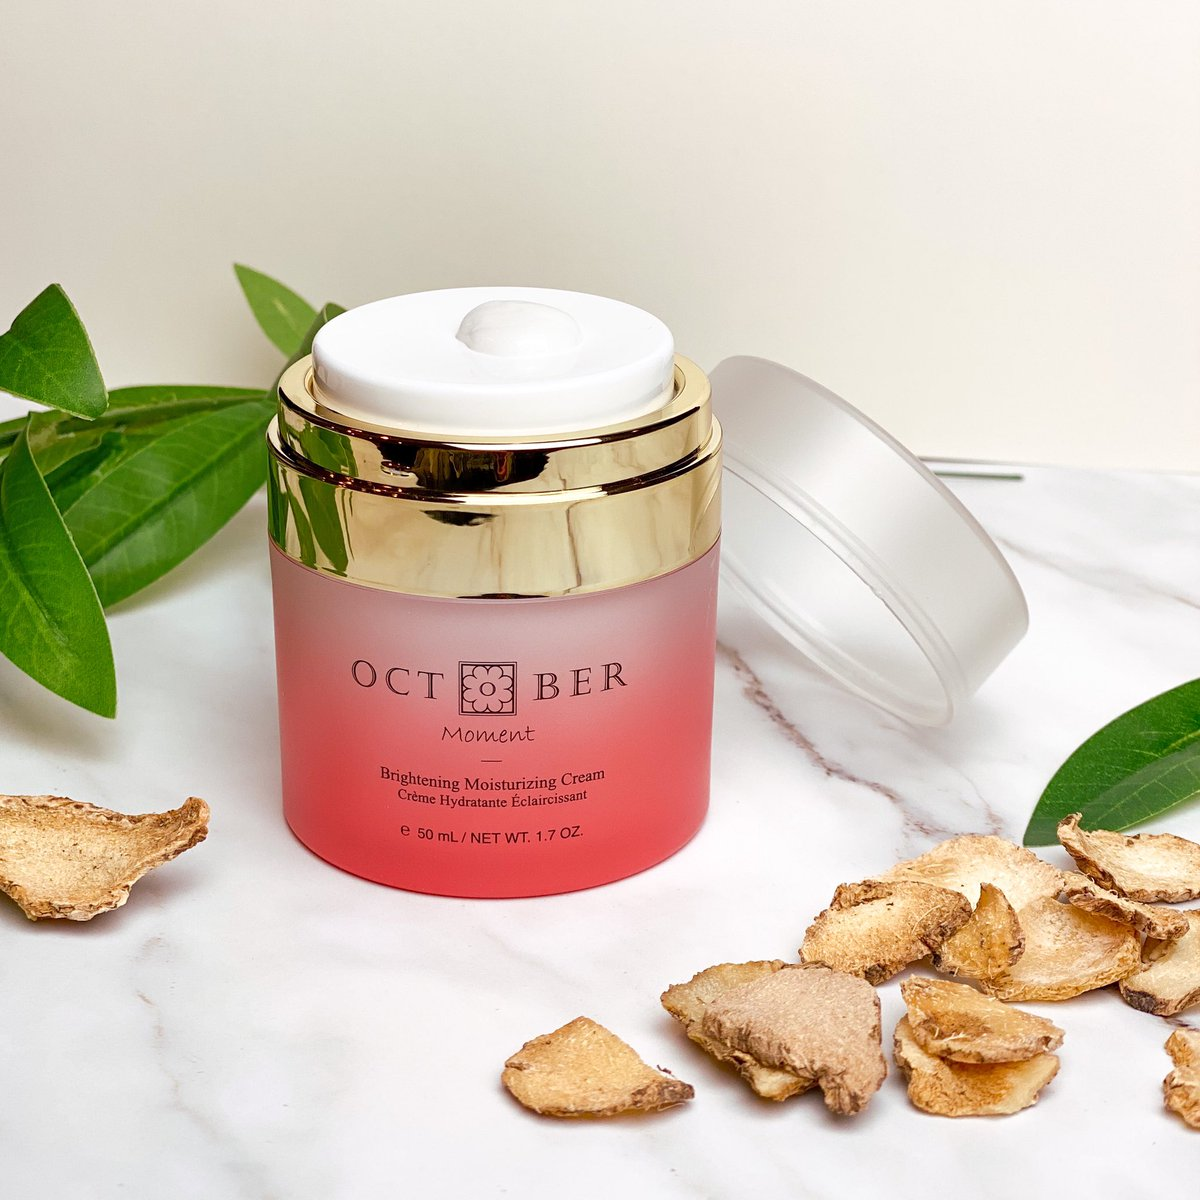 That fresh jar feeling 🌸  Our cream is produced in an airless pump container, meaning no more finger dipping into the jar! This design takes into consideration hygiene and helps to prevent contact with bacteria and pollution.   #CrueltyFree #cleanbeauty #tuesdayvibe #skincaretip